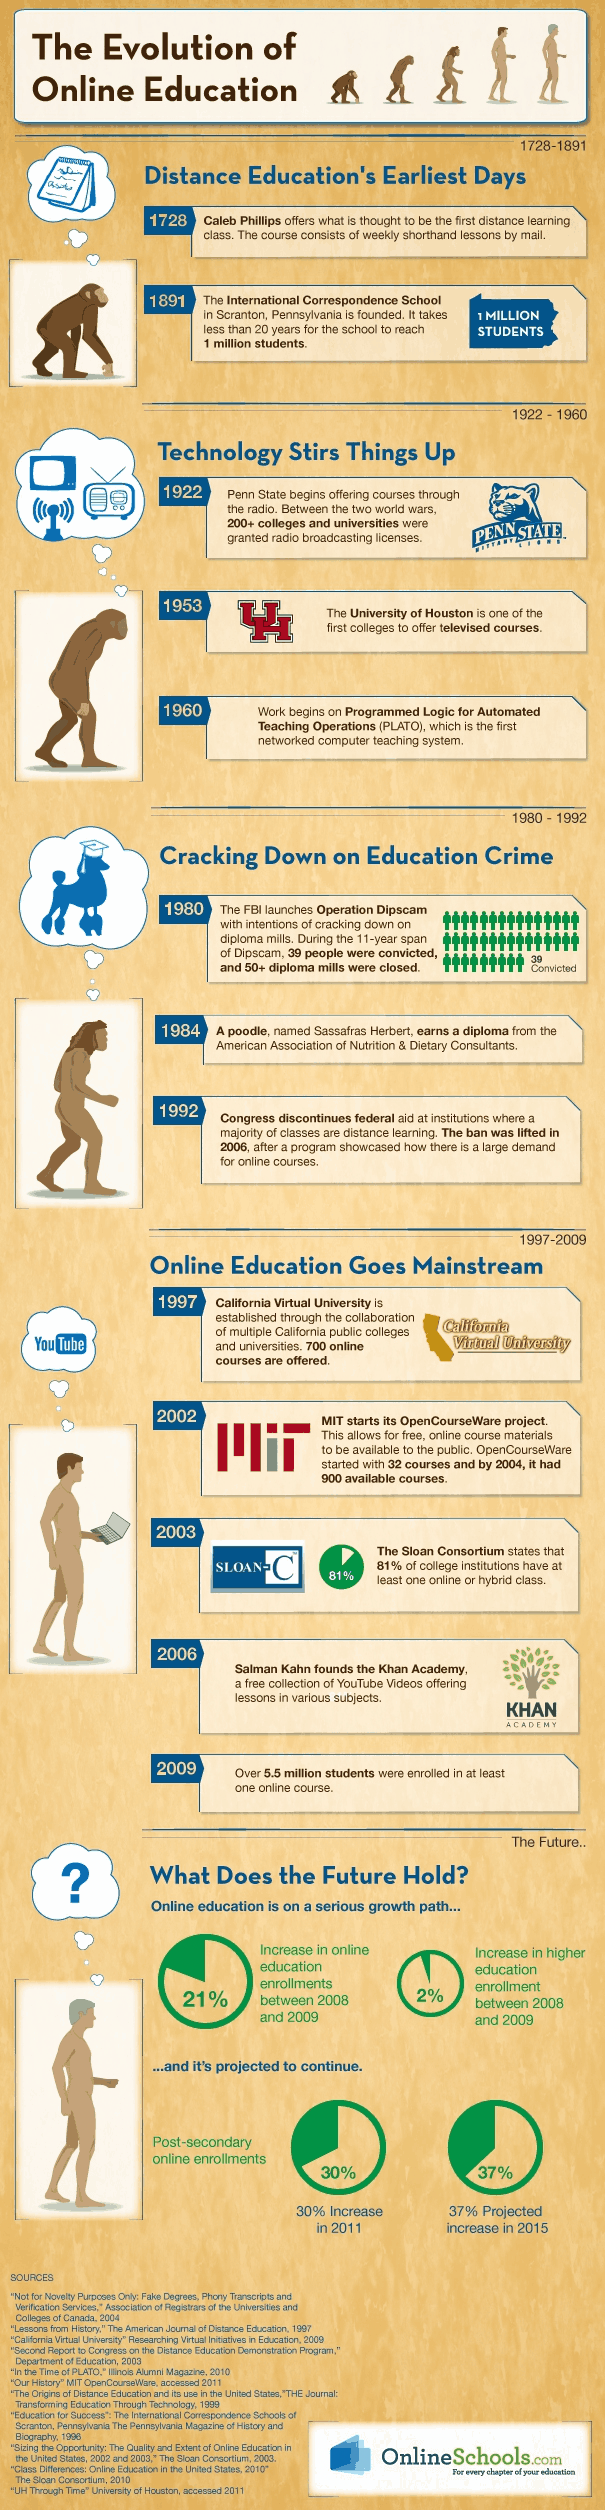 Evolution of online education